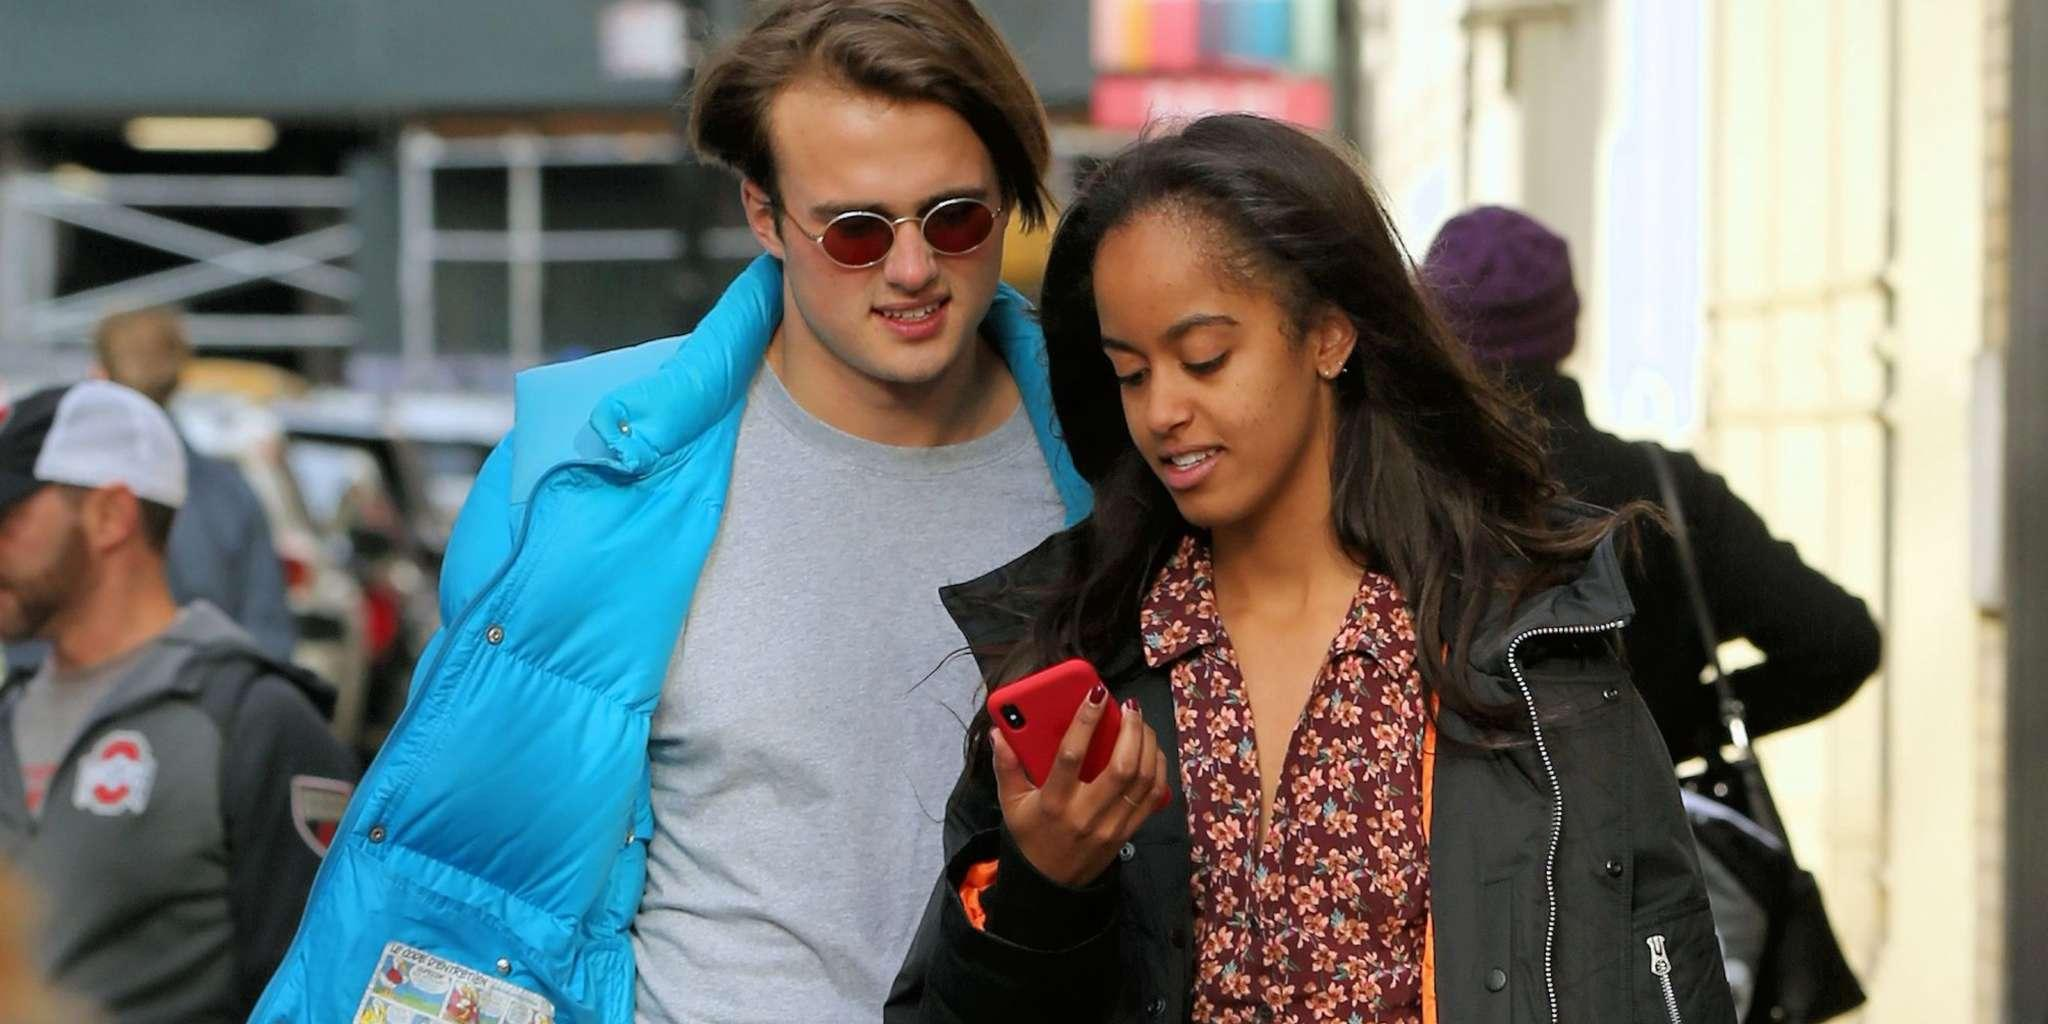 Malia Obama Is Spotted With Her Boo In Los Angeles - Some Fans Hate That She's Smoking - See The Pics